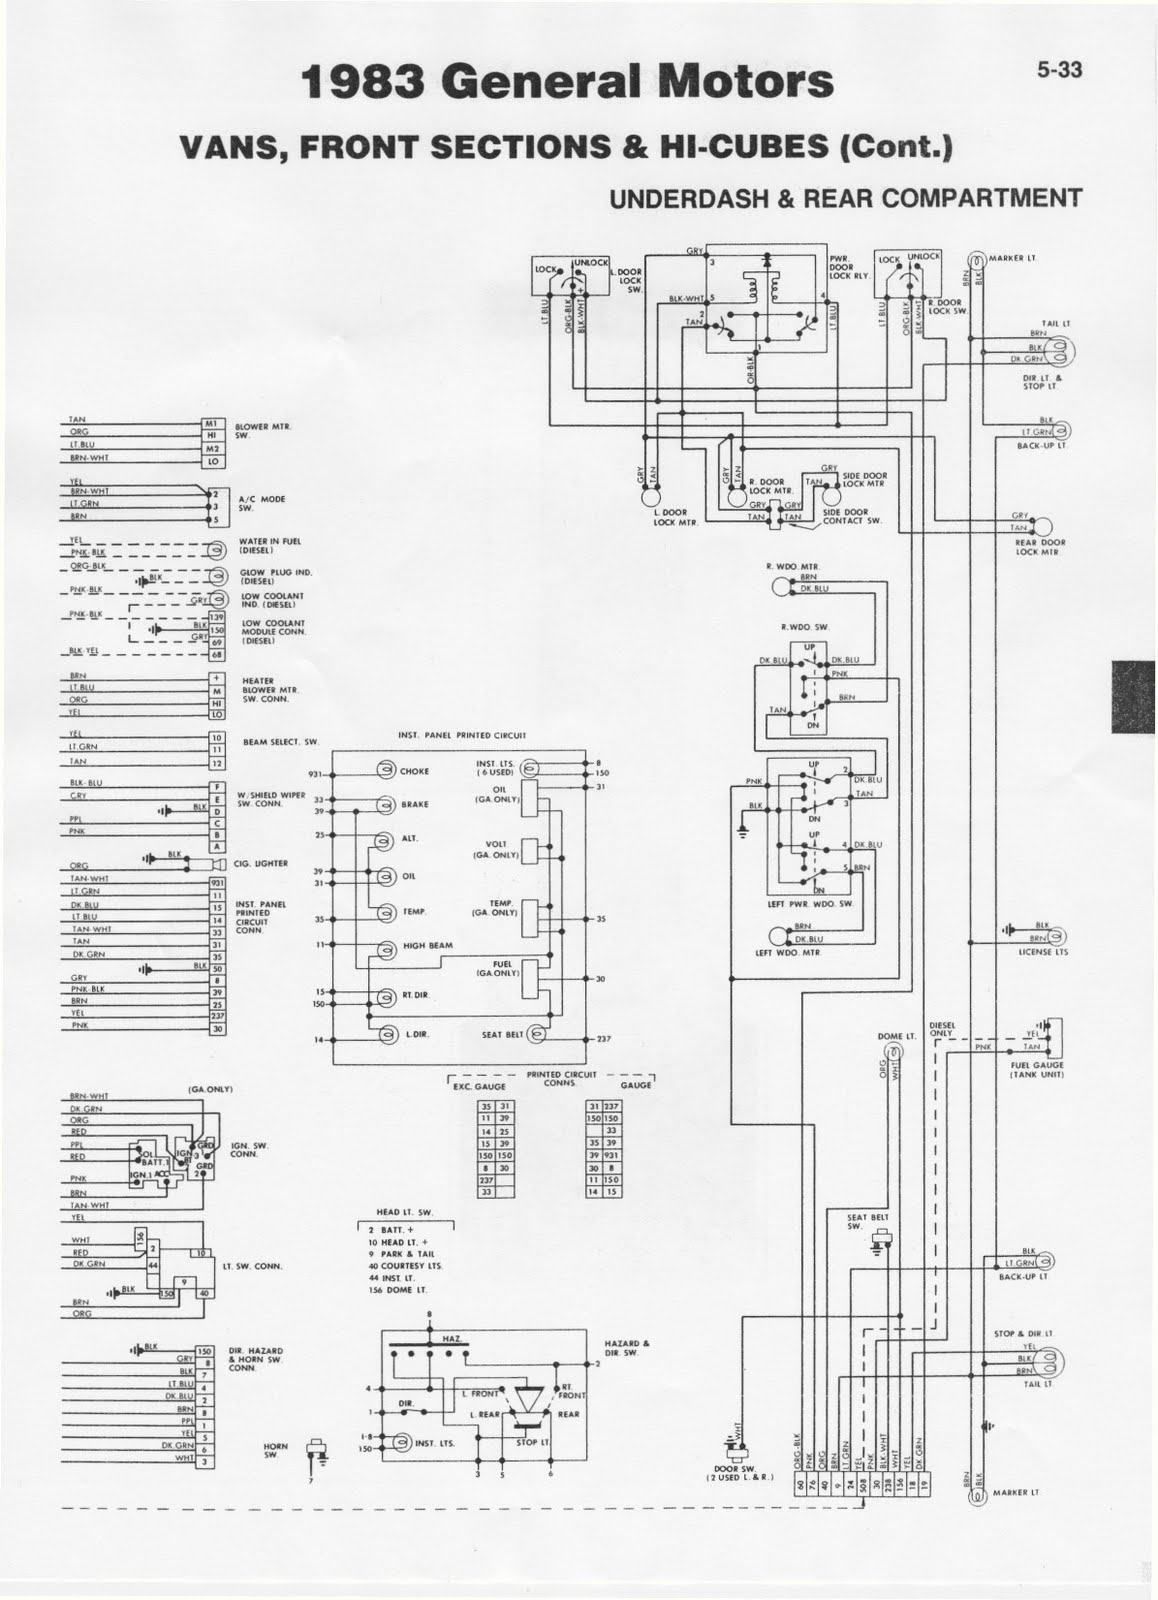 diagram] fleetwood motorhomes wiring diagrams full version hd quality wiring  diagrams - entreewarehouse.jtnettoyage.fr  entreewarehouse.jtnettoyage.fr